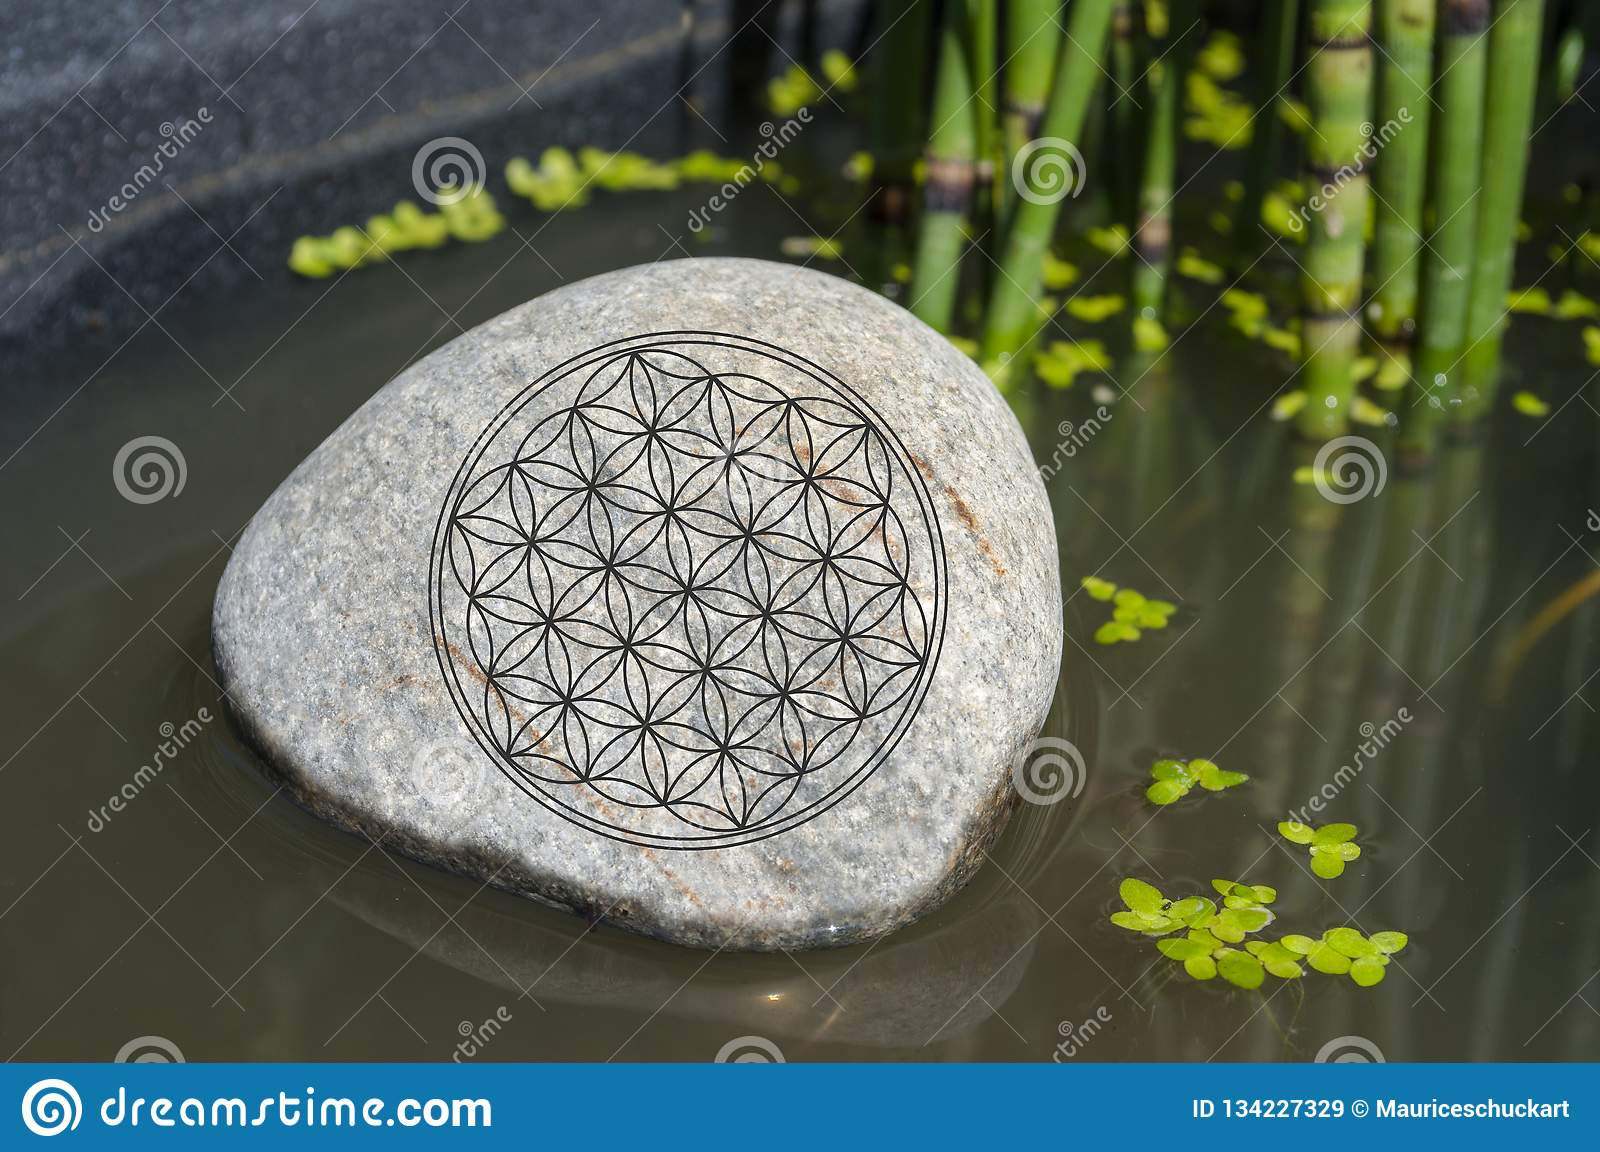 Stone in a forest with moss, sunlight with symbol Flower of Life